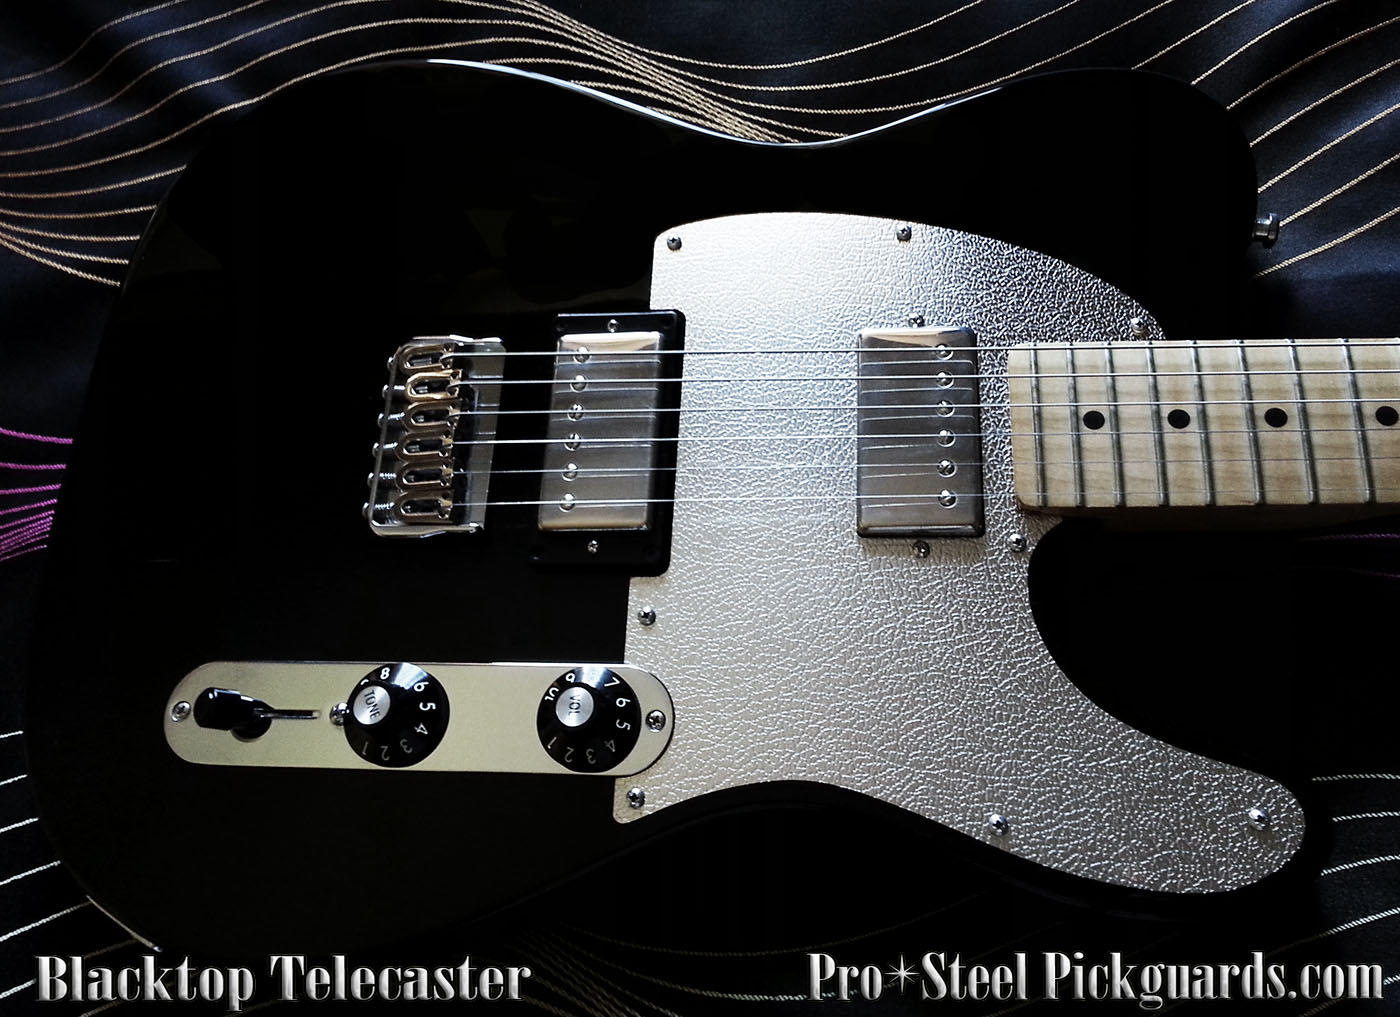 New Buffalo Fender Blacktop Telecaster Steel Pickguard Pro